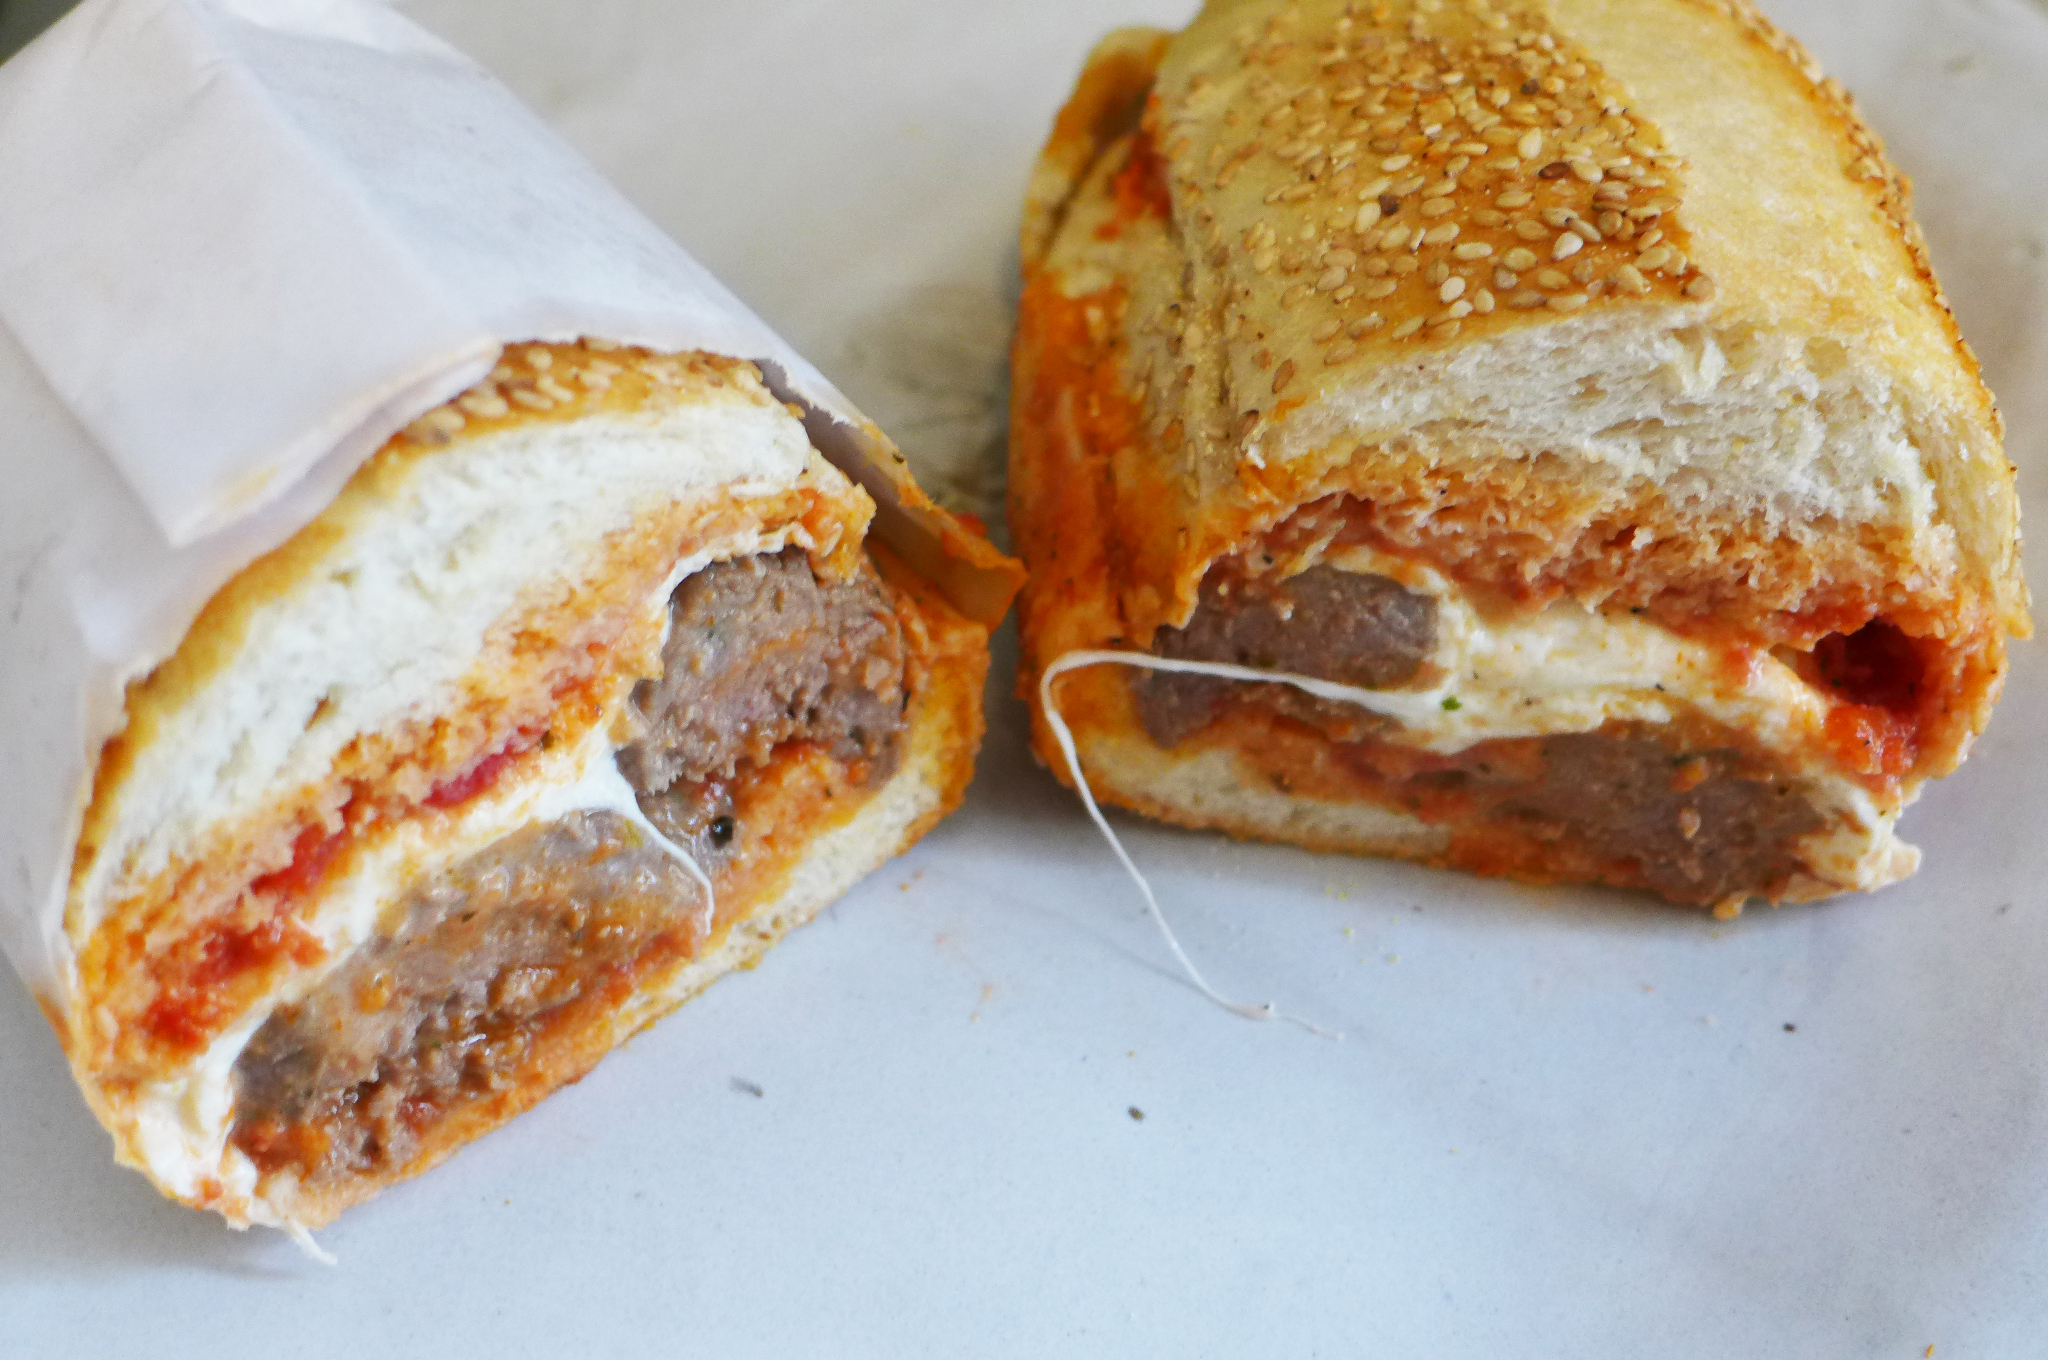 A meatball hero with red tomato sauce and white mozzarella is cut through the middle to reveal the interior.